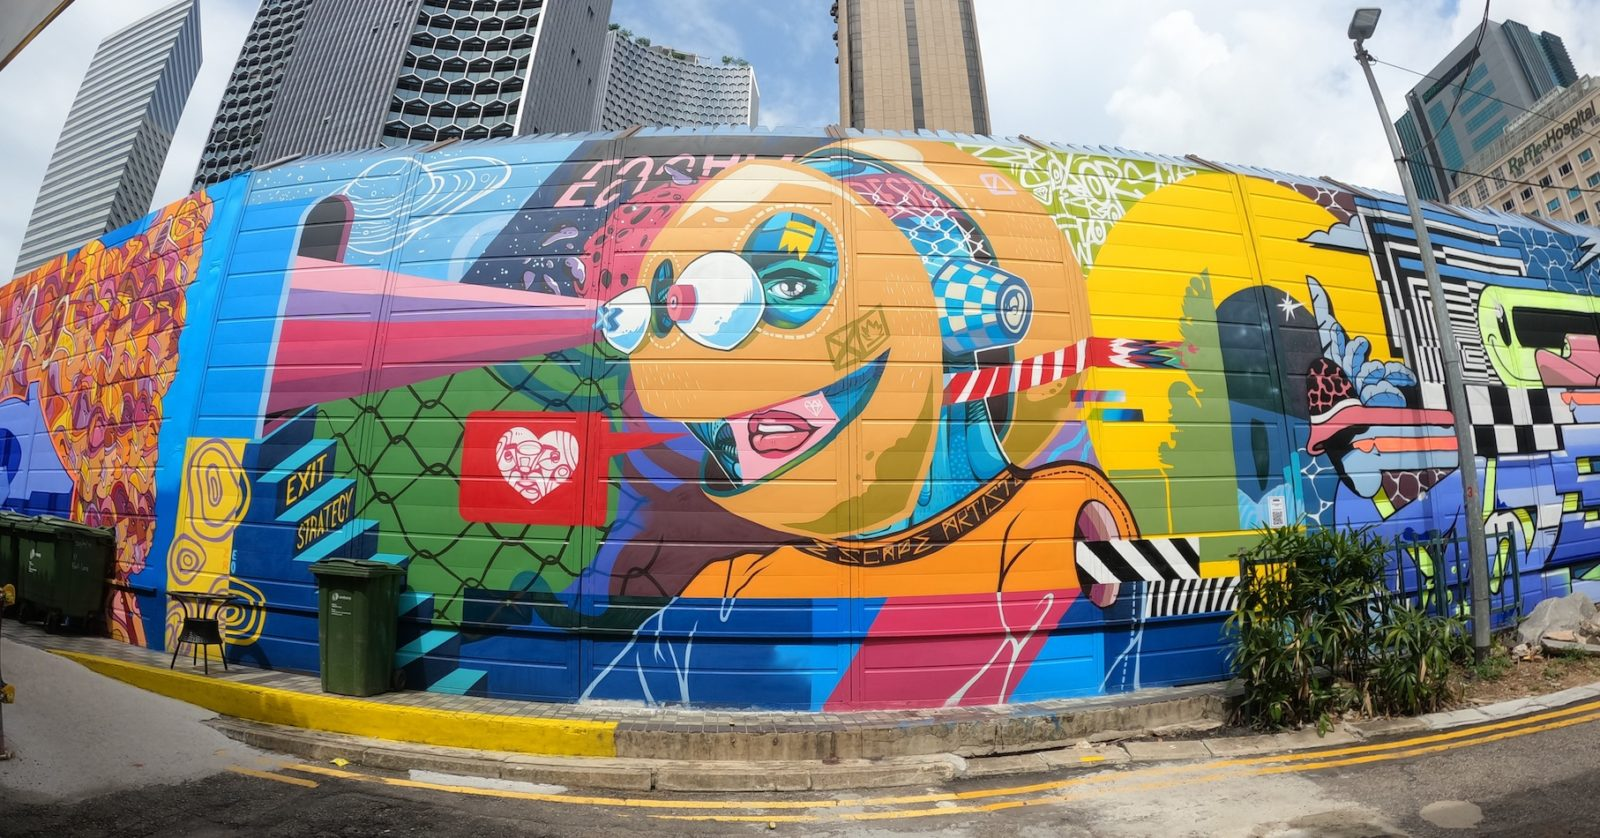 Want to try your hand at graffiti? This street art workshop lets you do just that